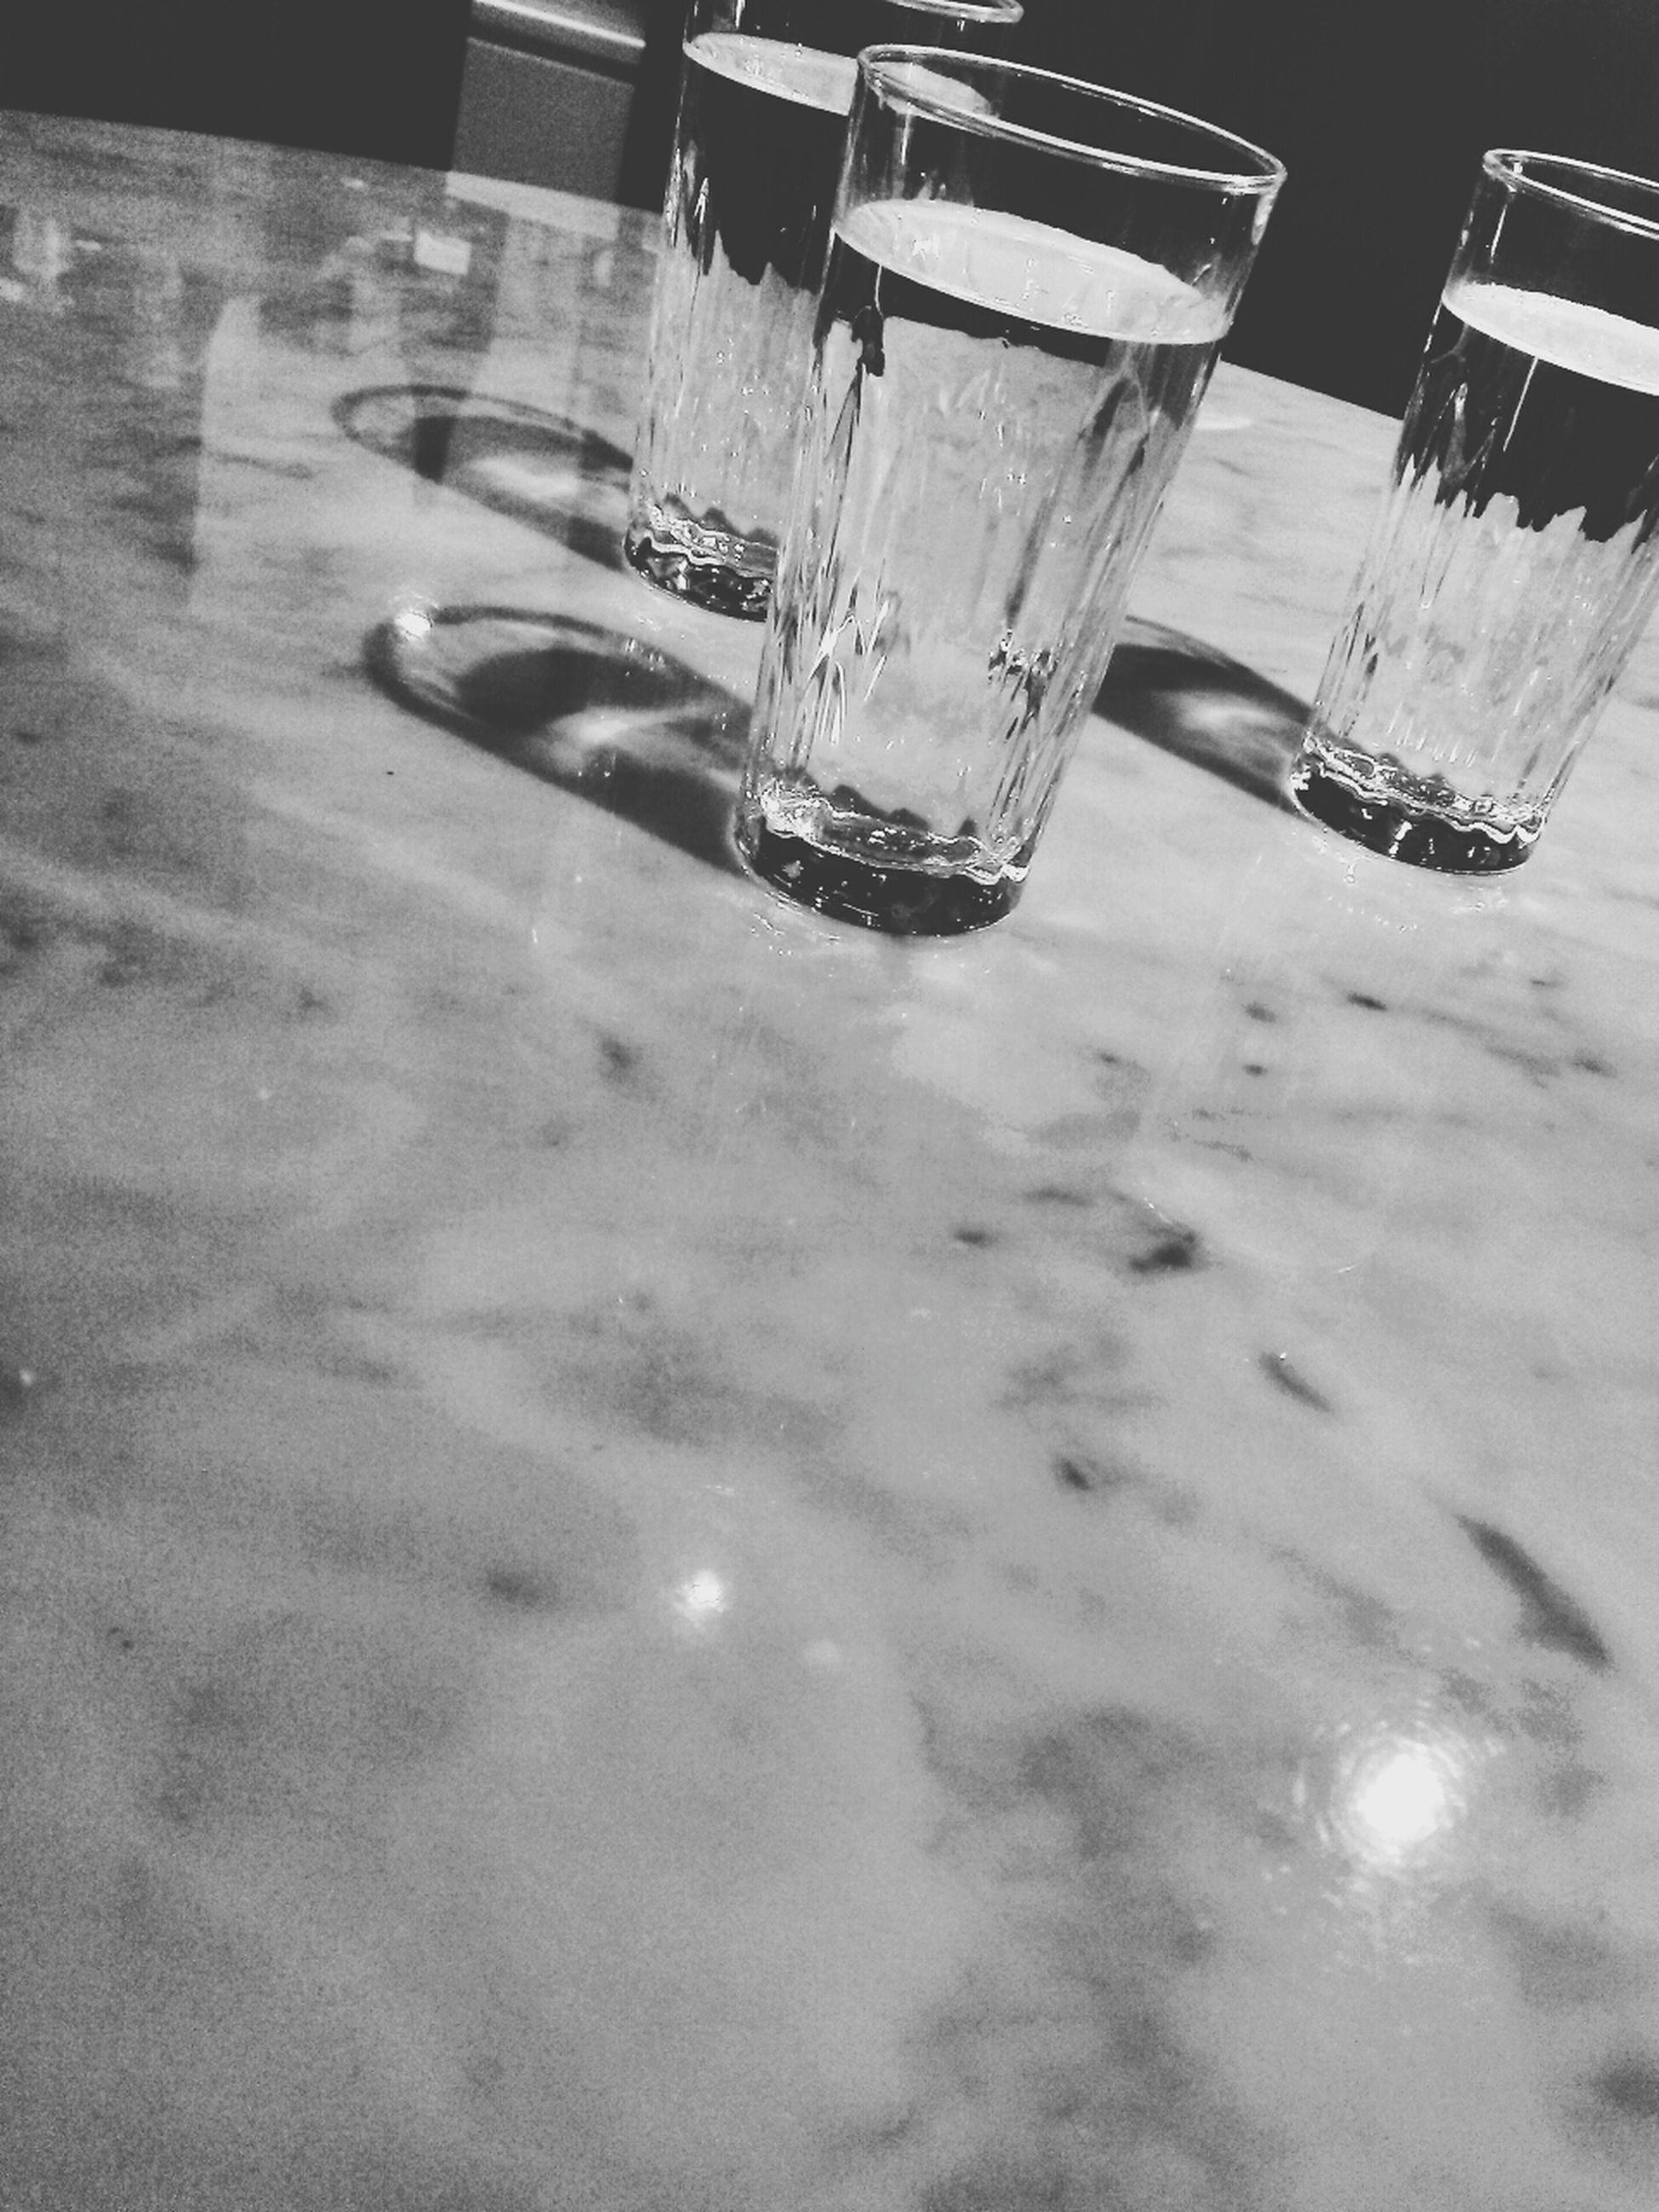 reflection, mode of transport, water, transportation, table, glass - material, drinking glass, sunlight, drink, refreshment, transparent, day, car, no people, high angle view, indoors, shadow, nautical vessel, land vehicle